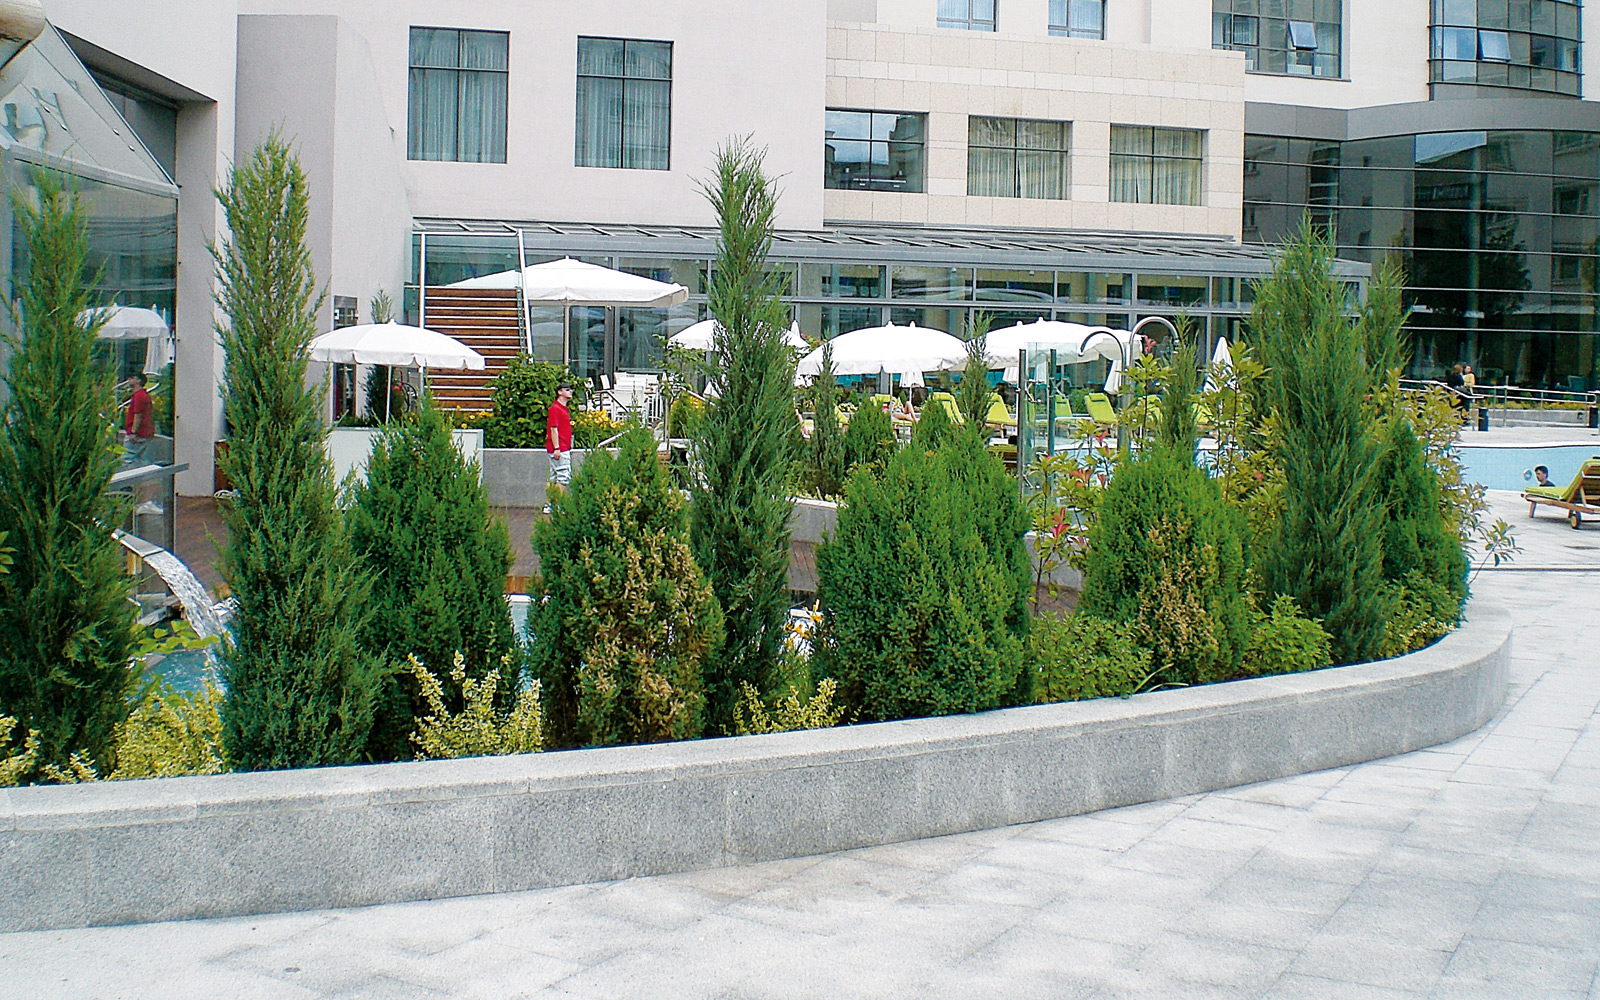 Curved walkways and plant bed with shrubs